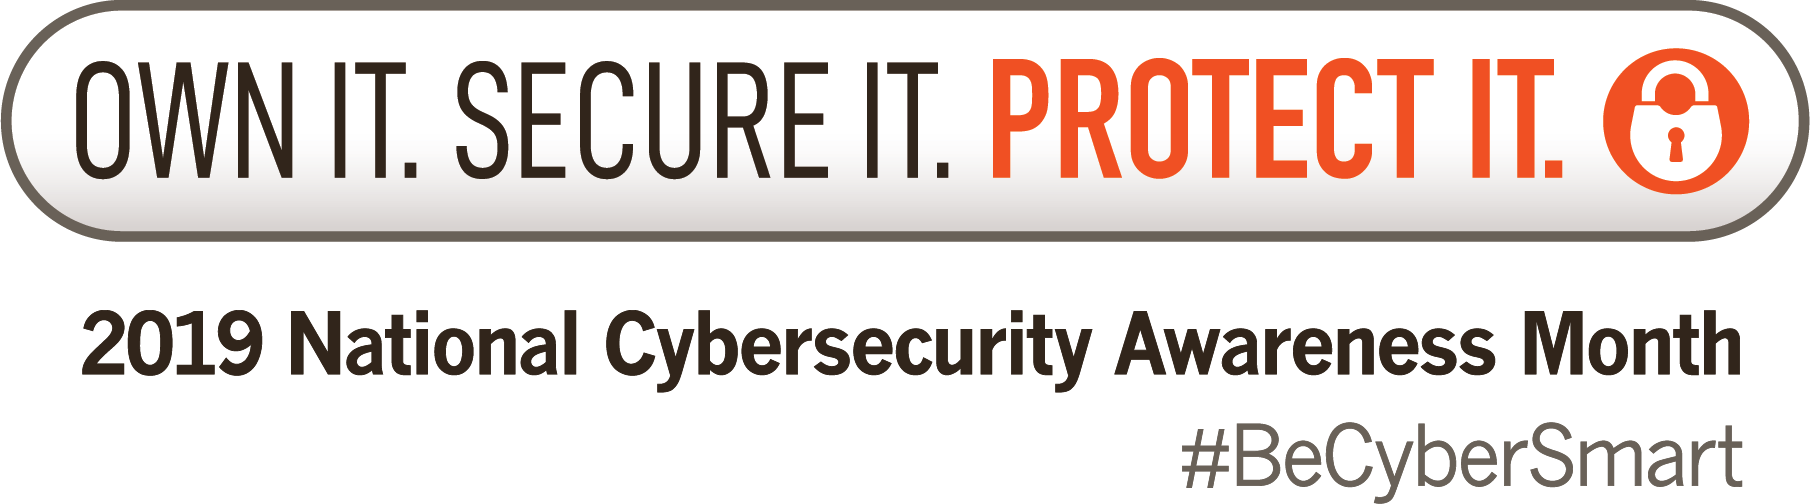 Icon for 2019 National Cybersecurity Awareness Month stating: Own IT. Secure IT. Protect IT.